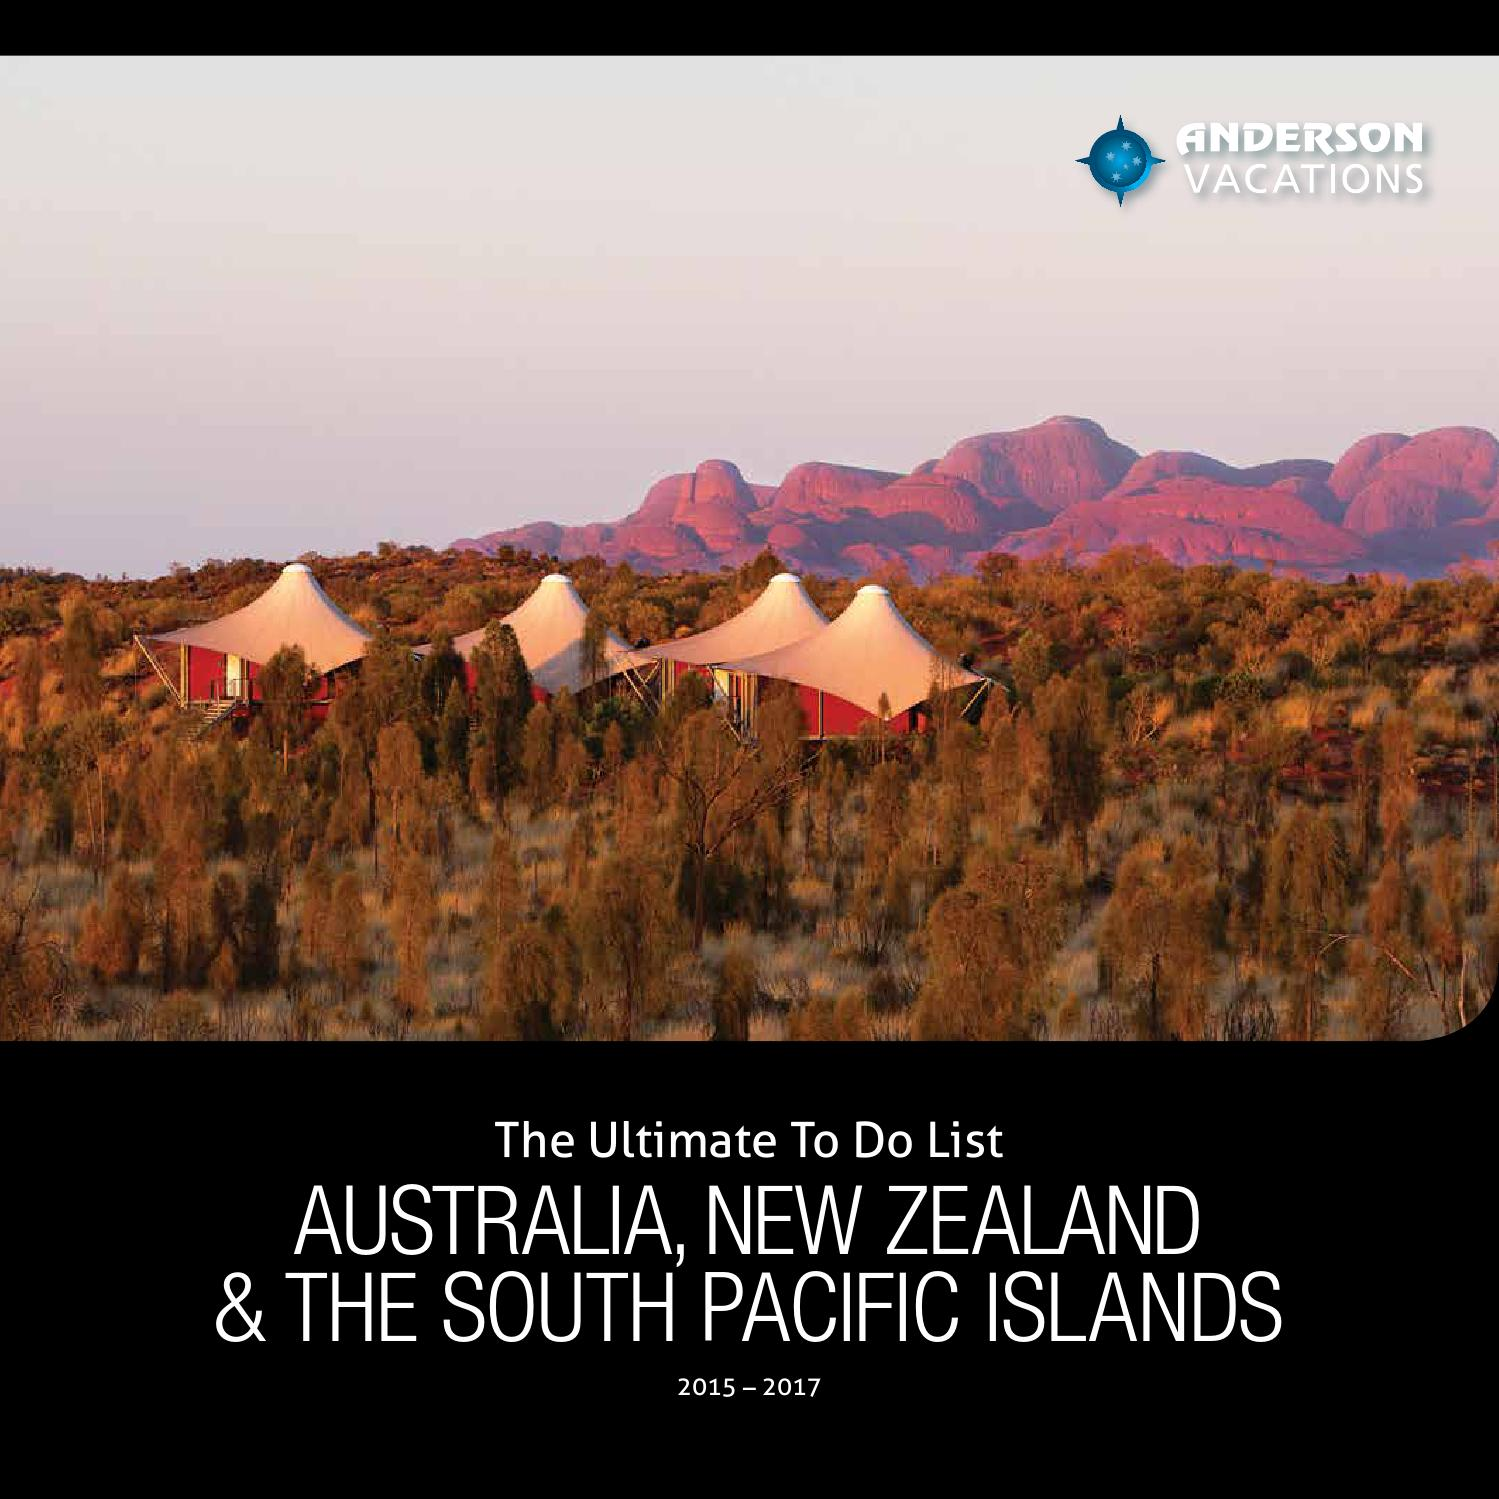 Australia South Pacific: The Ultimate To Do List Australia, New Zealand & The South